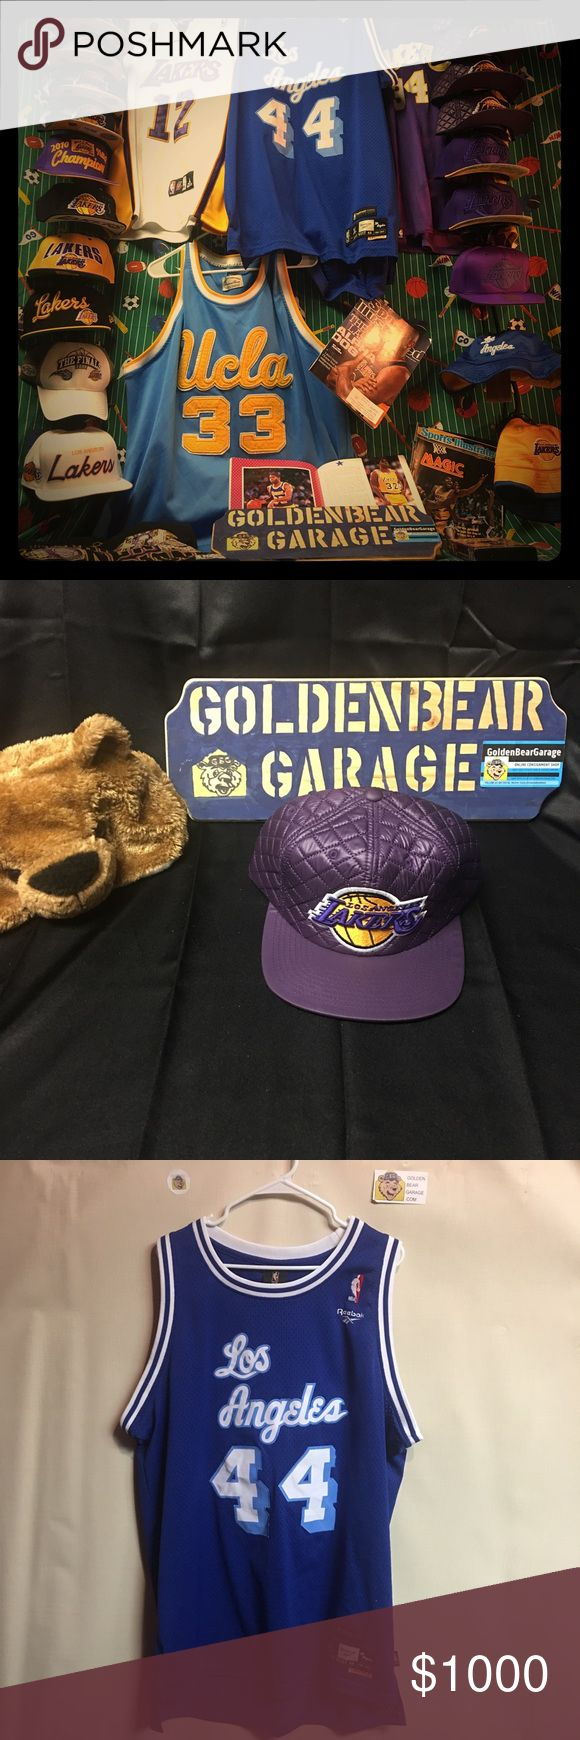 Los Angeles Lakers Hats, Jerseys and Teeshirts GoldenBearGarage Has a Great Selection of Los Angeles Lakers Apparel currently in Stock. All Items shown in Listing are for sale. Please Inquire which item you are interested in and we will make you your own listing. GoldenBearGarage Accessories Hats